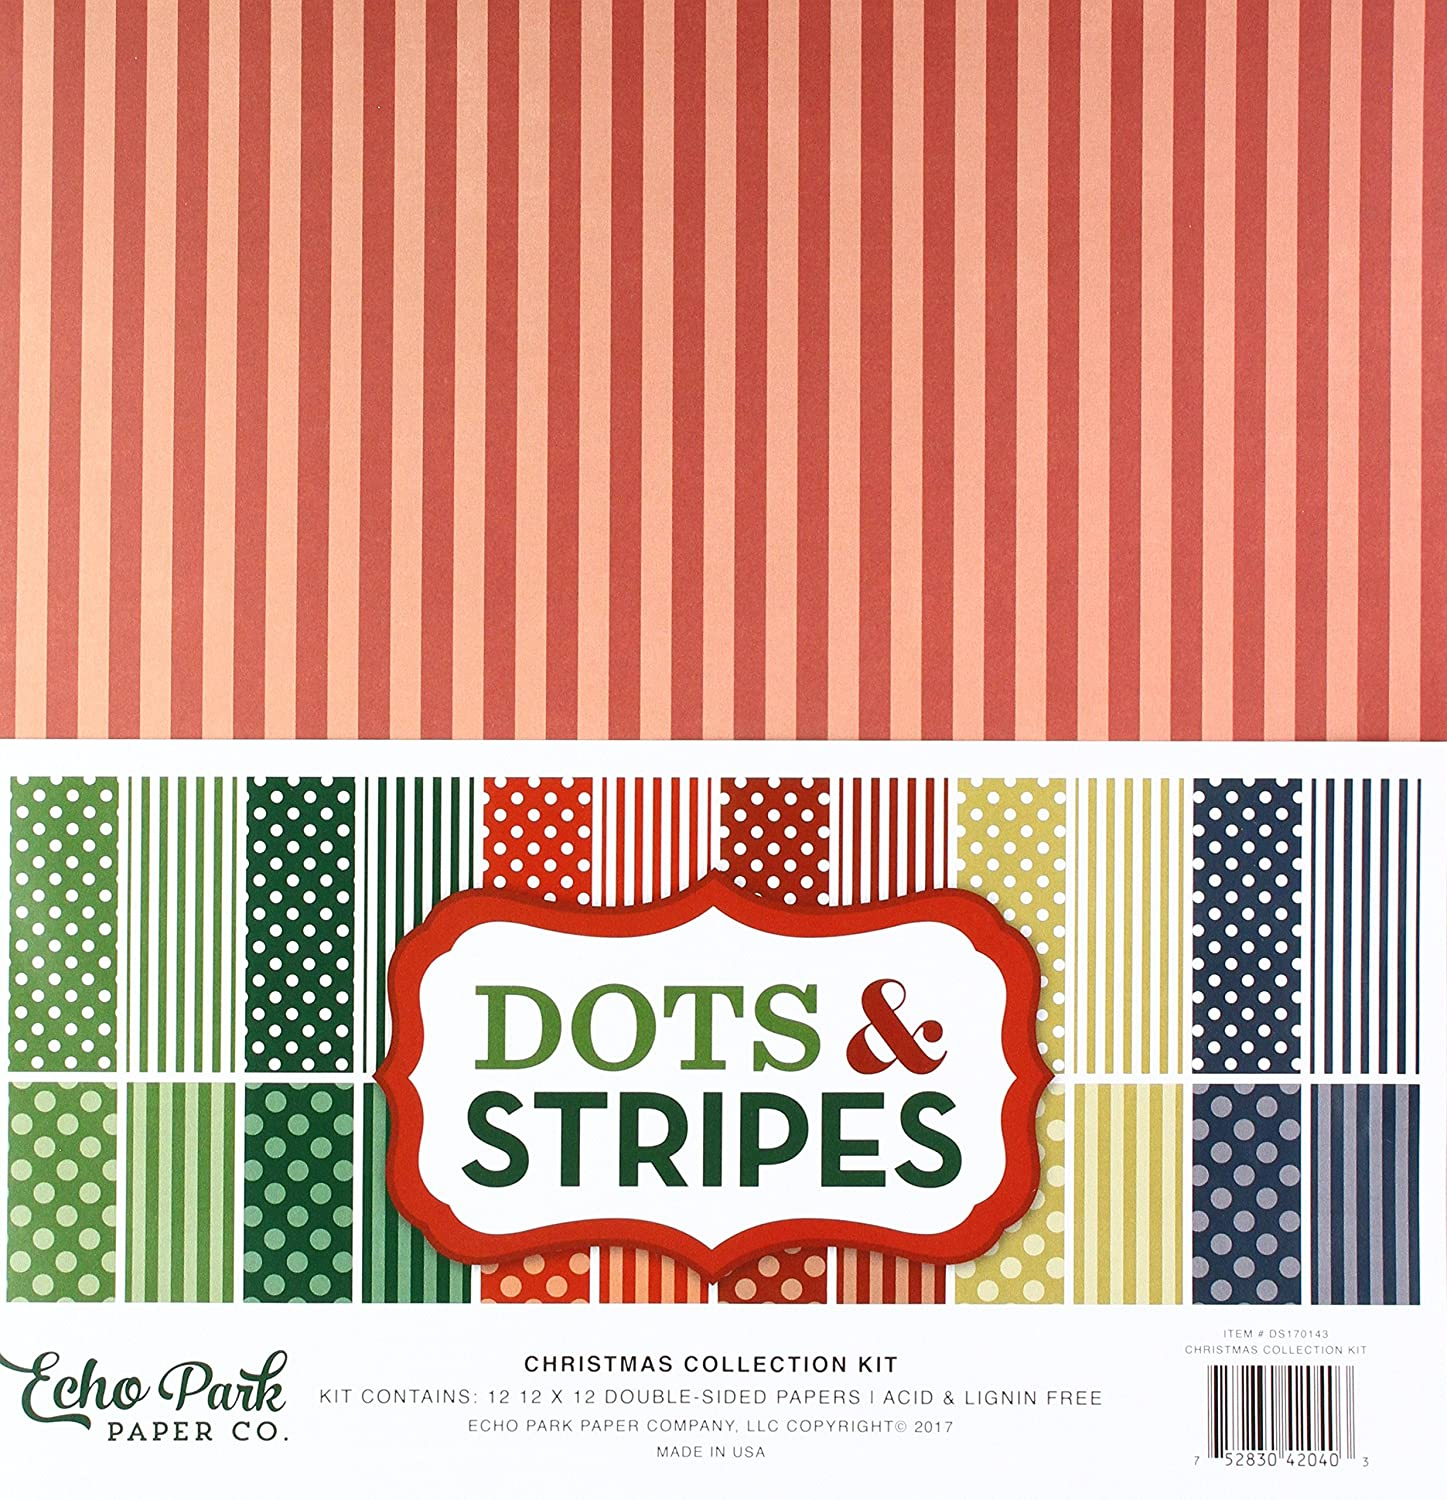 Echo Park Paper Company Christmas Collection Kit